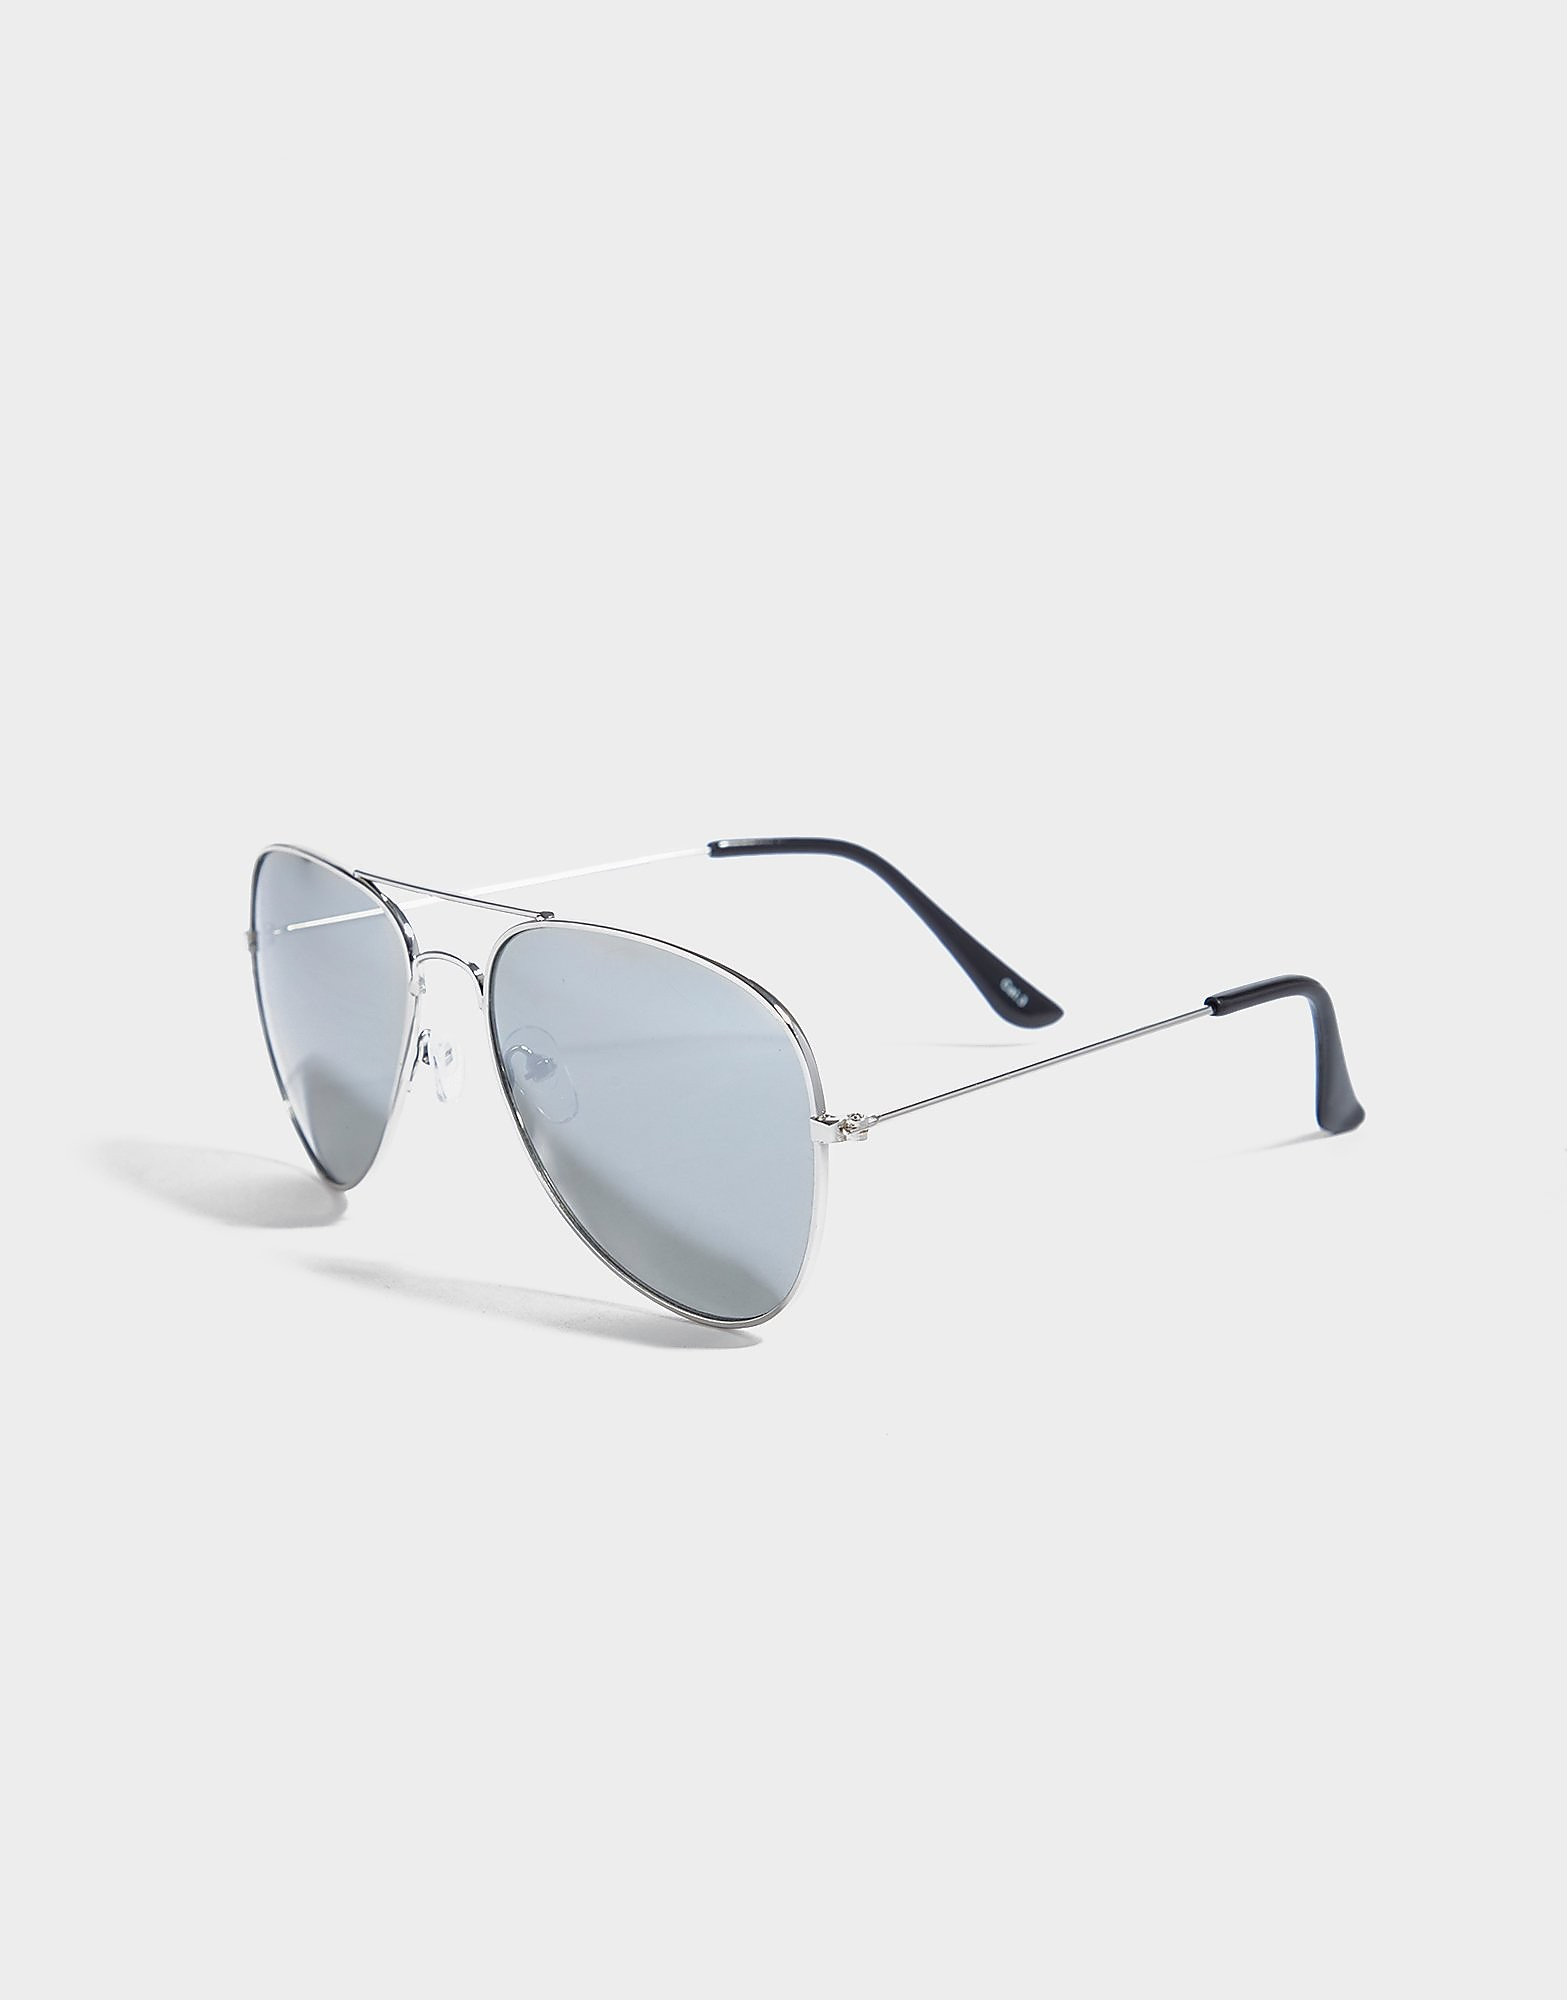 Brookhaven Francis Mirrored Aviator Sunglasses